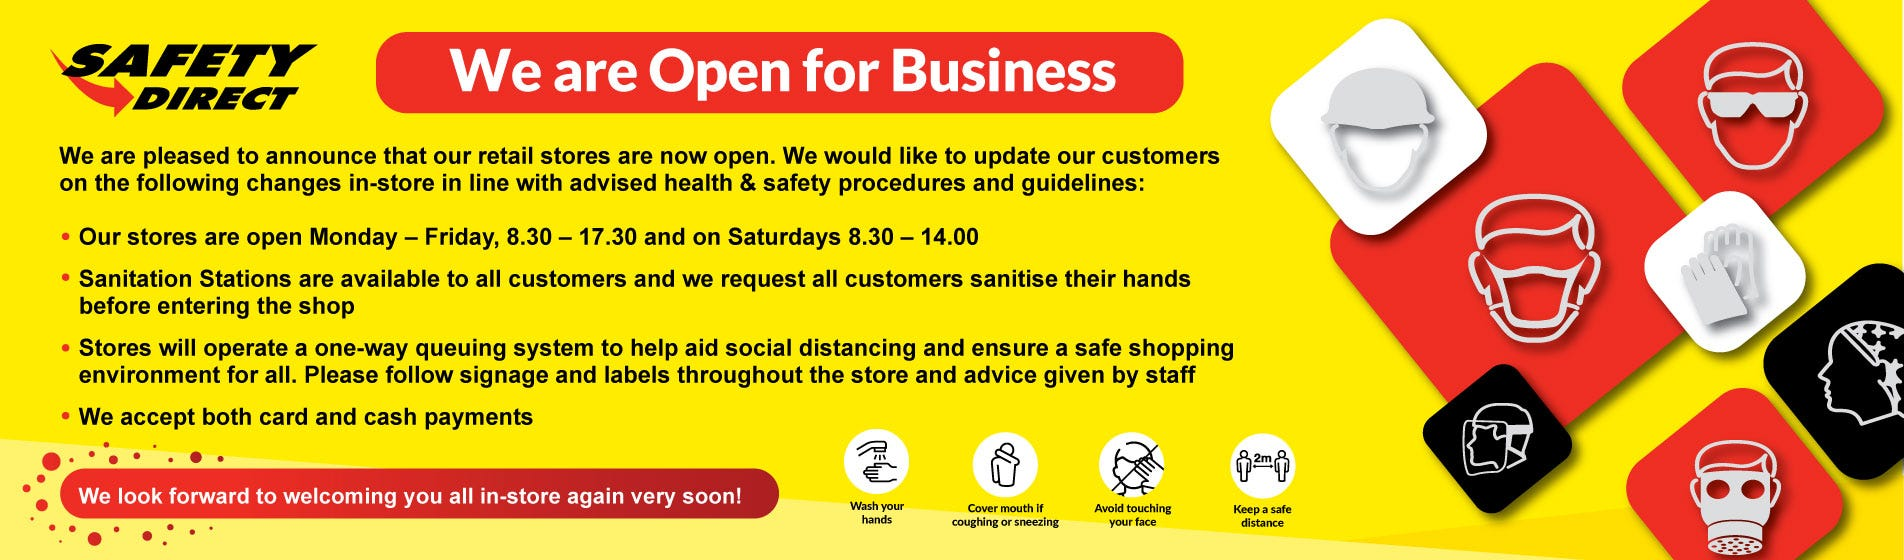 Safety Direct Retail Stores Re-Open